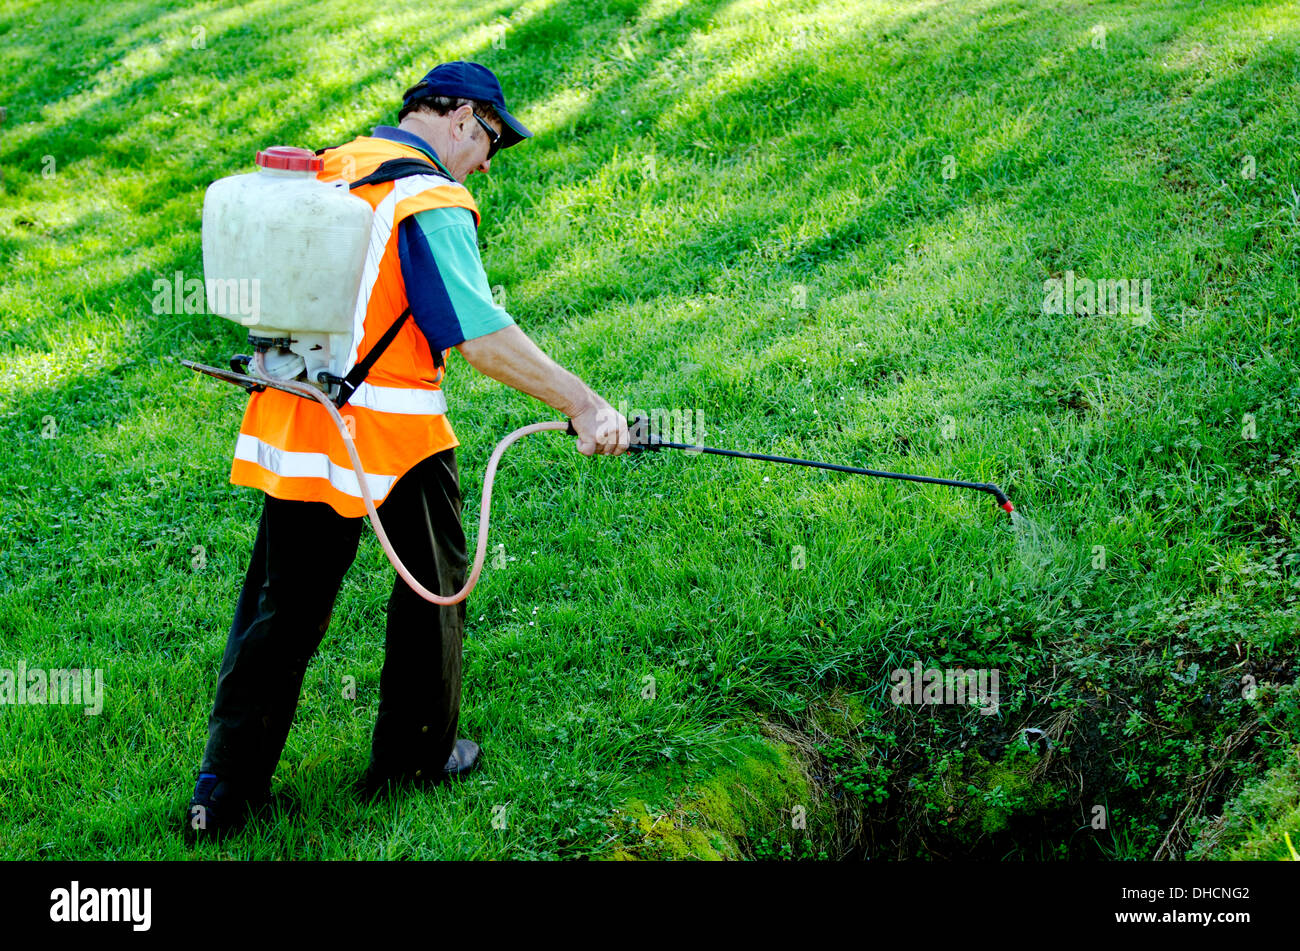 Worker Sprays Weeds And Plants In A Green Grassy Lawn In A City Garden    Stock